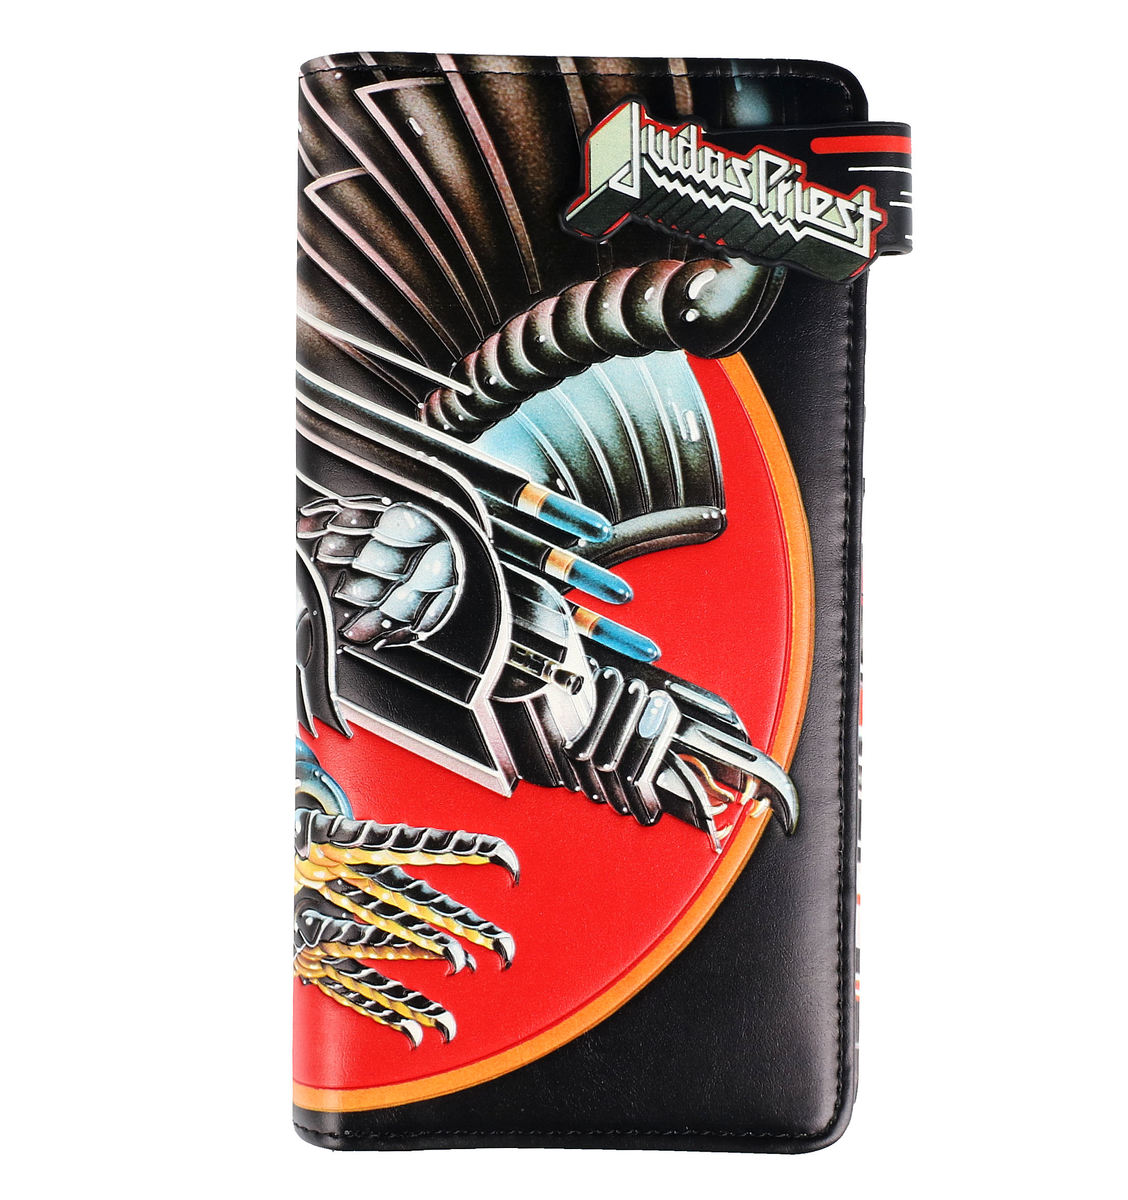 peněženka Judas Priest - Screaming for Vengeance - B4687N9